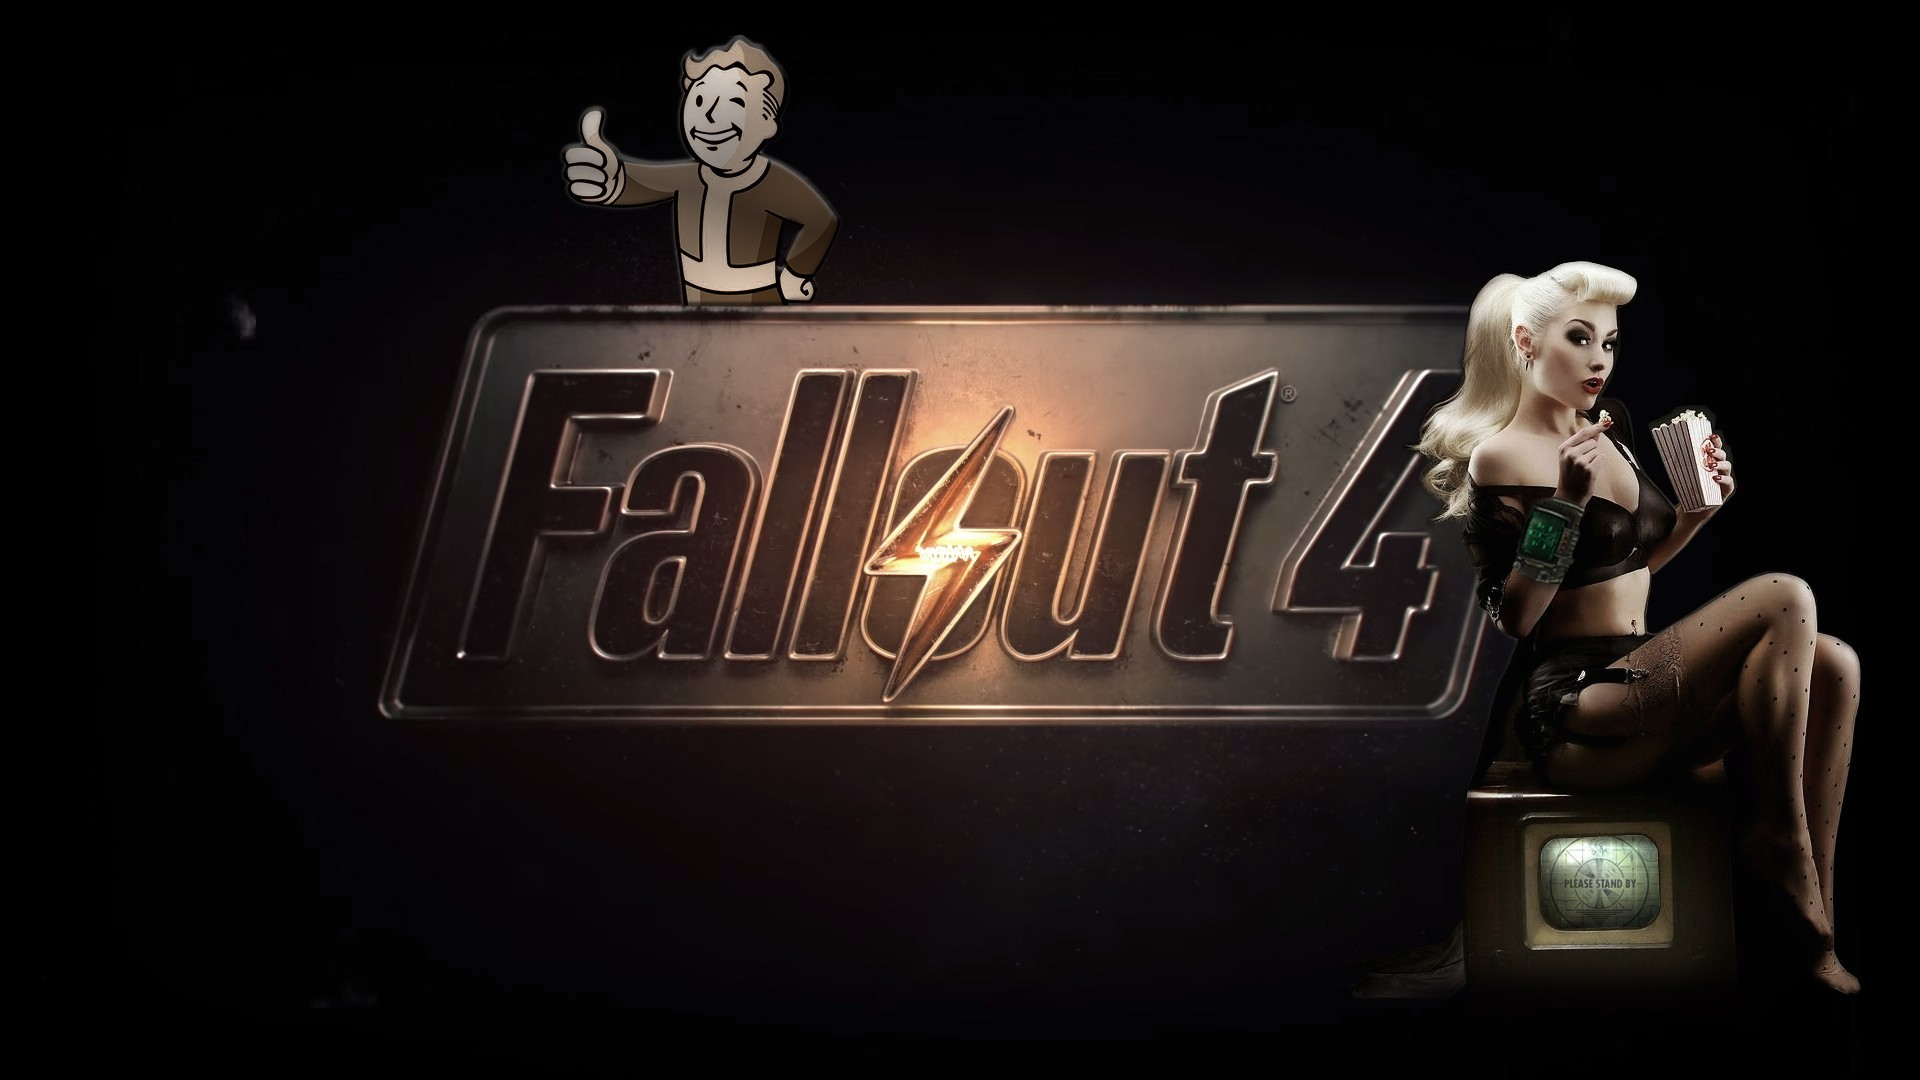 Fallout 4 HD wallpaper ·① Download free cool High ...